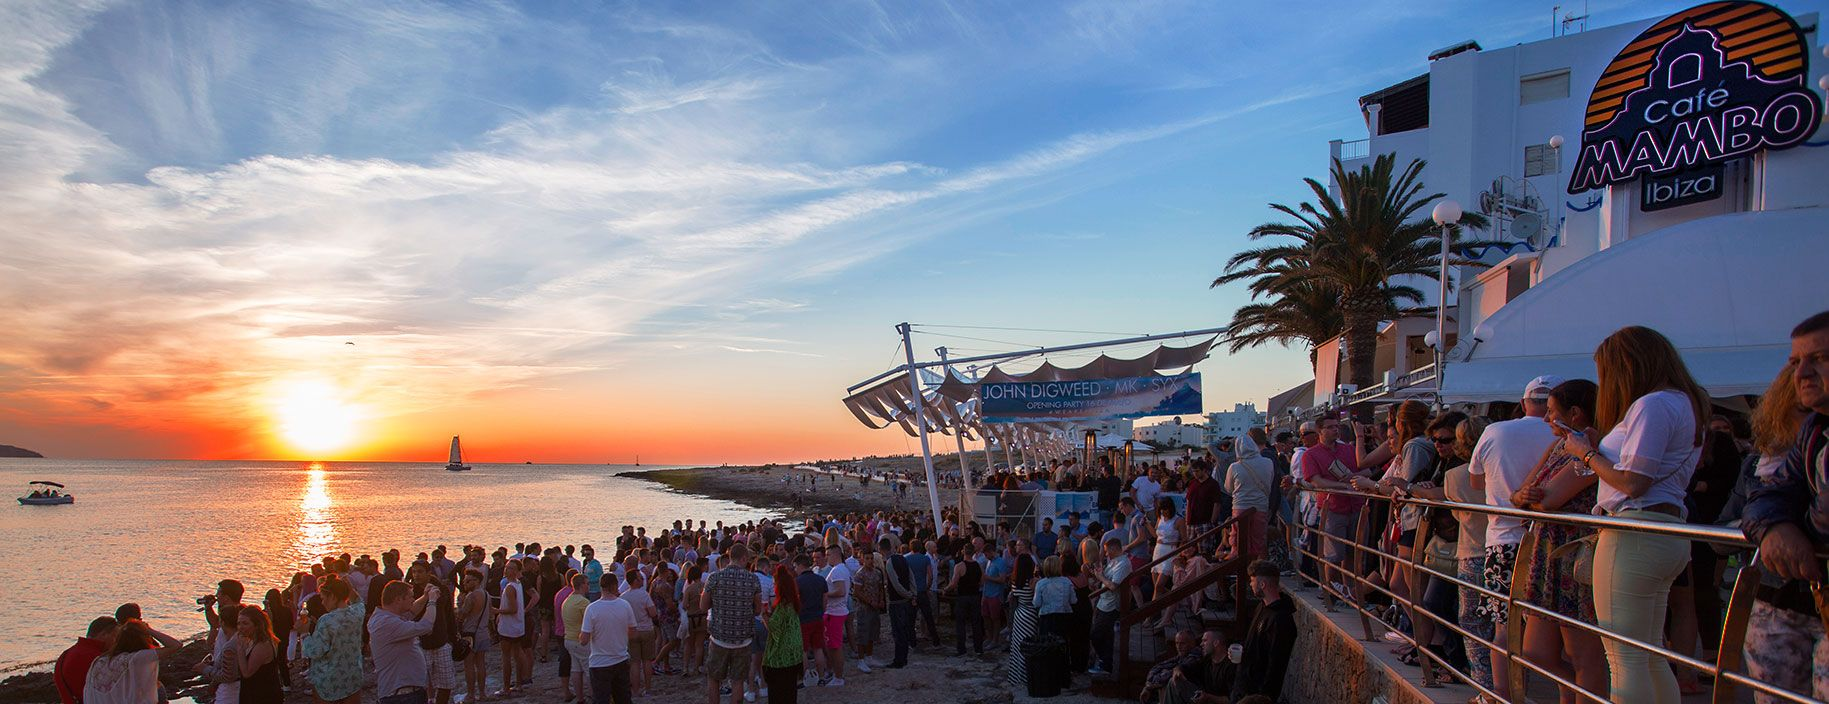 Cafe Mambo next door to Cafe del Mar. Good for sunset